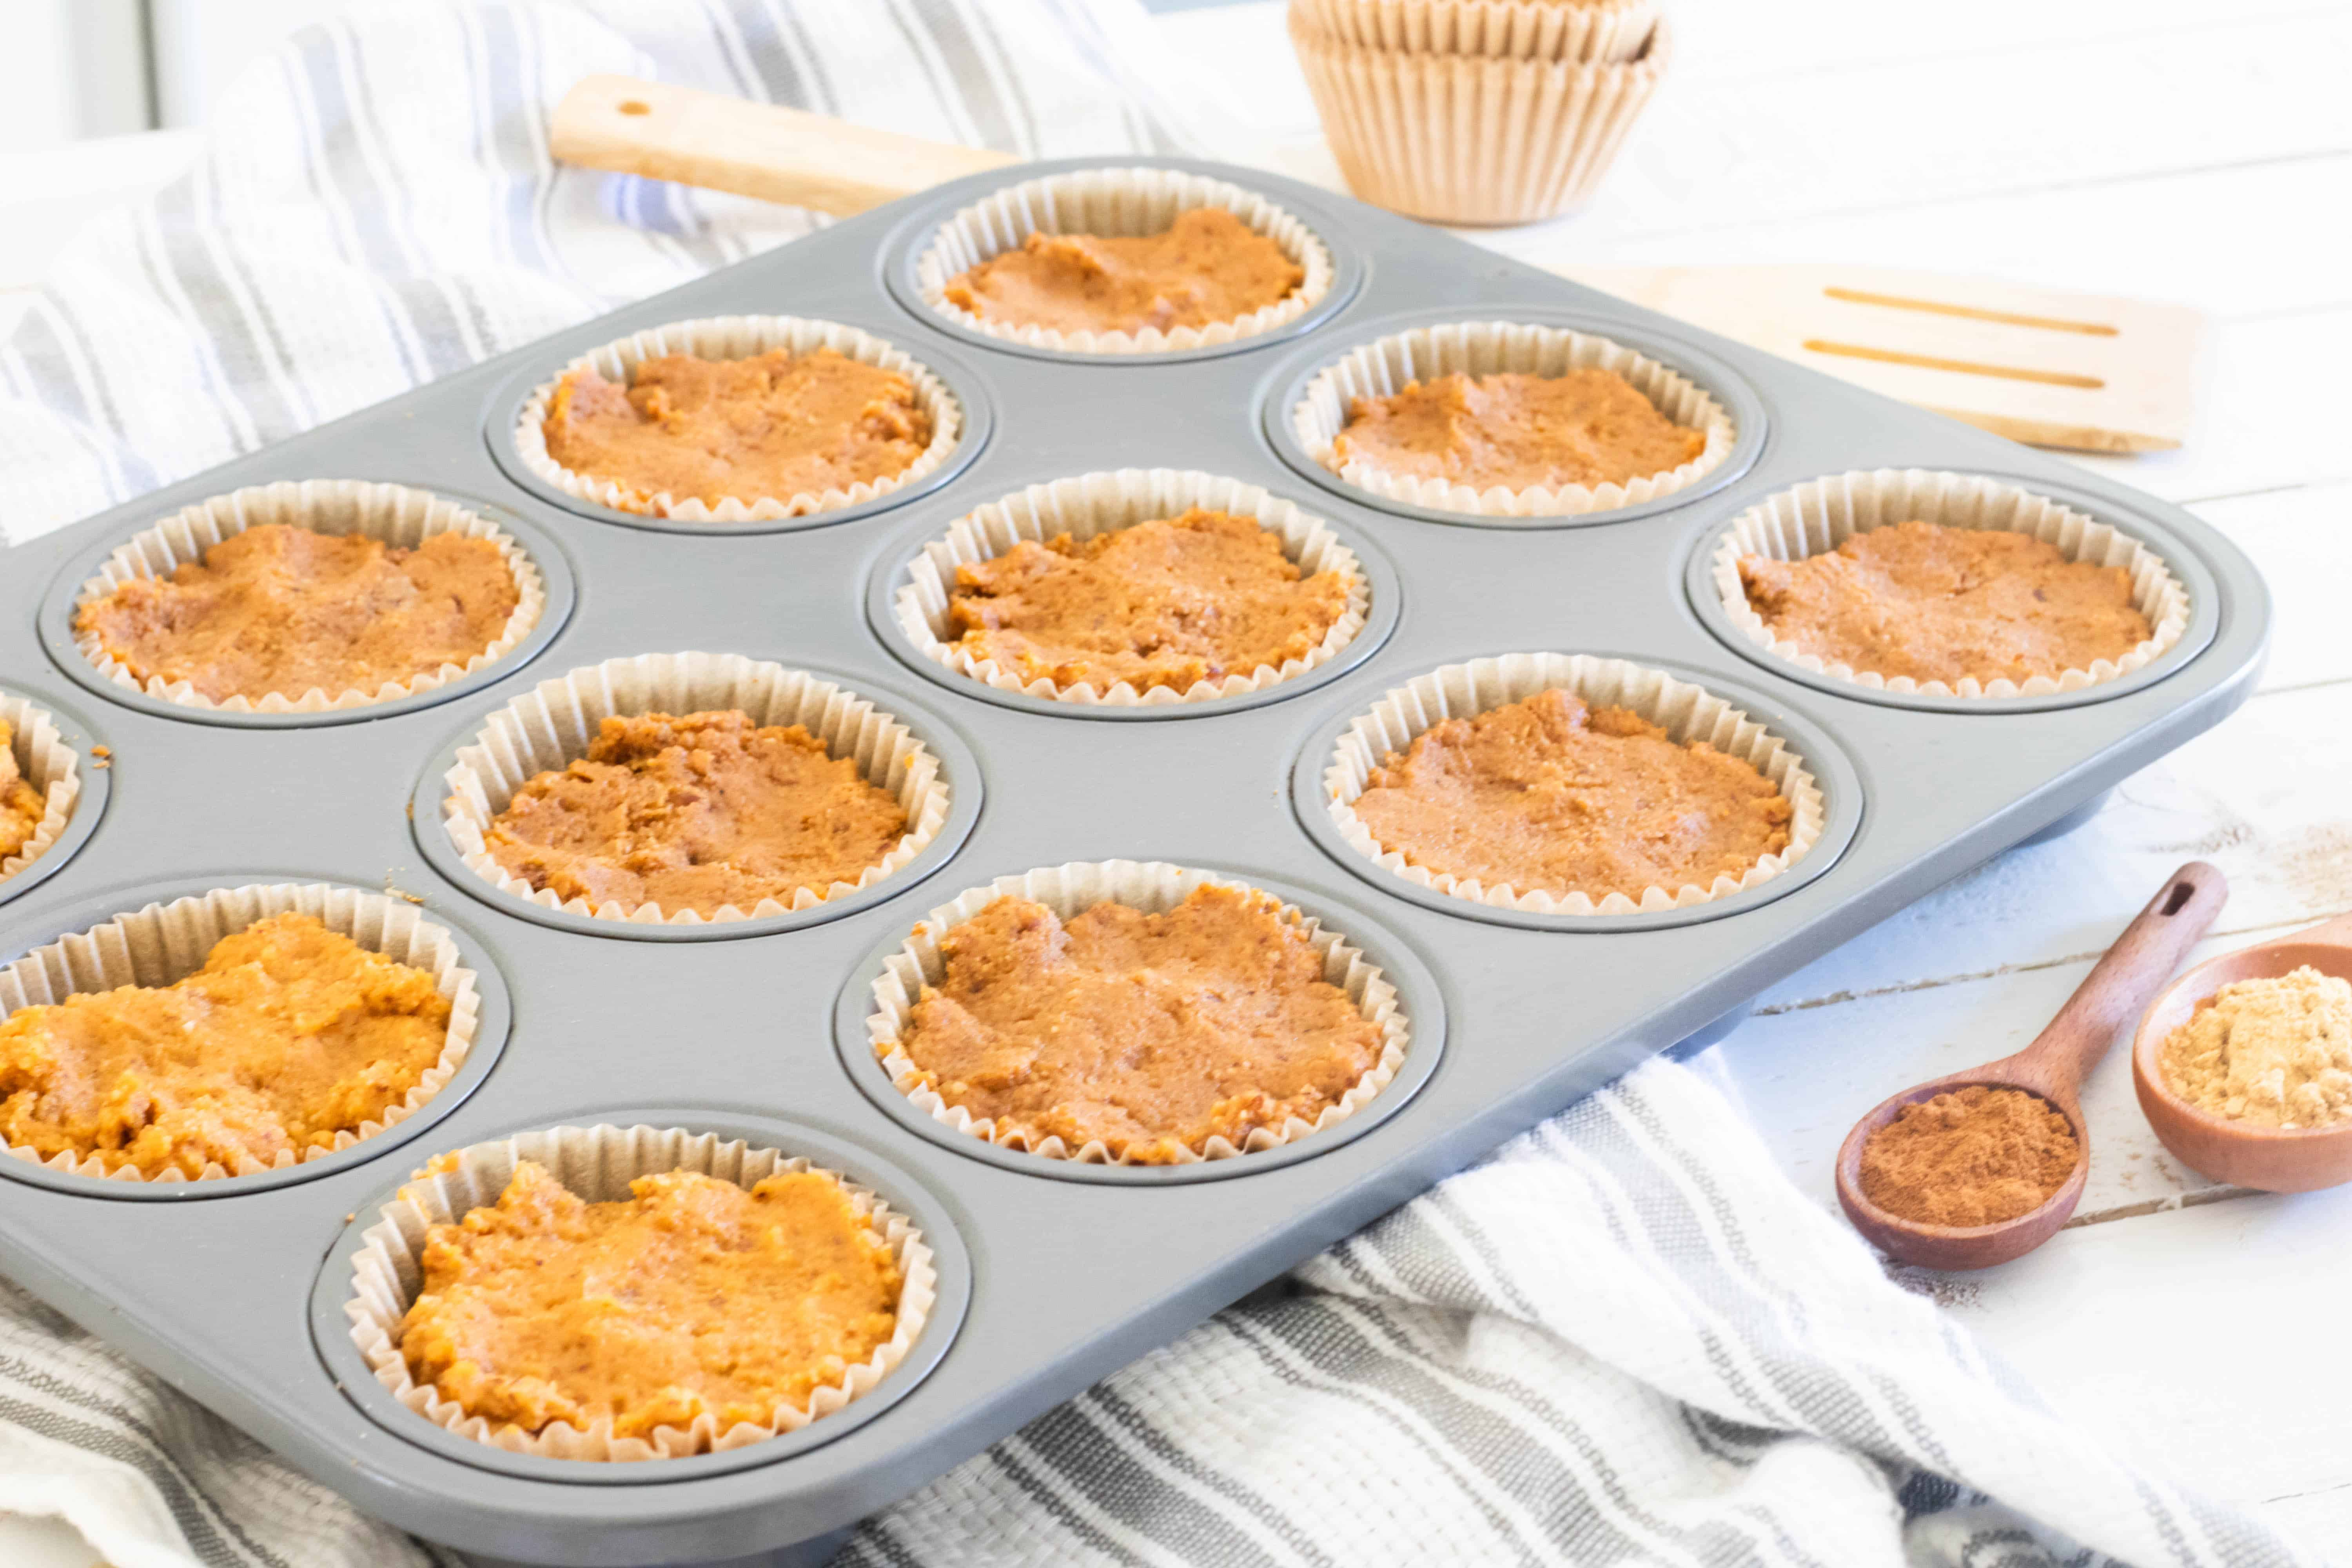 pumpkin batter in a muffin pan on gray and white strip towel